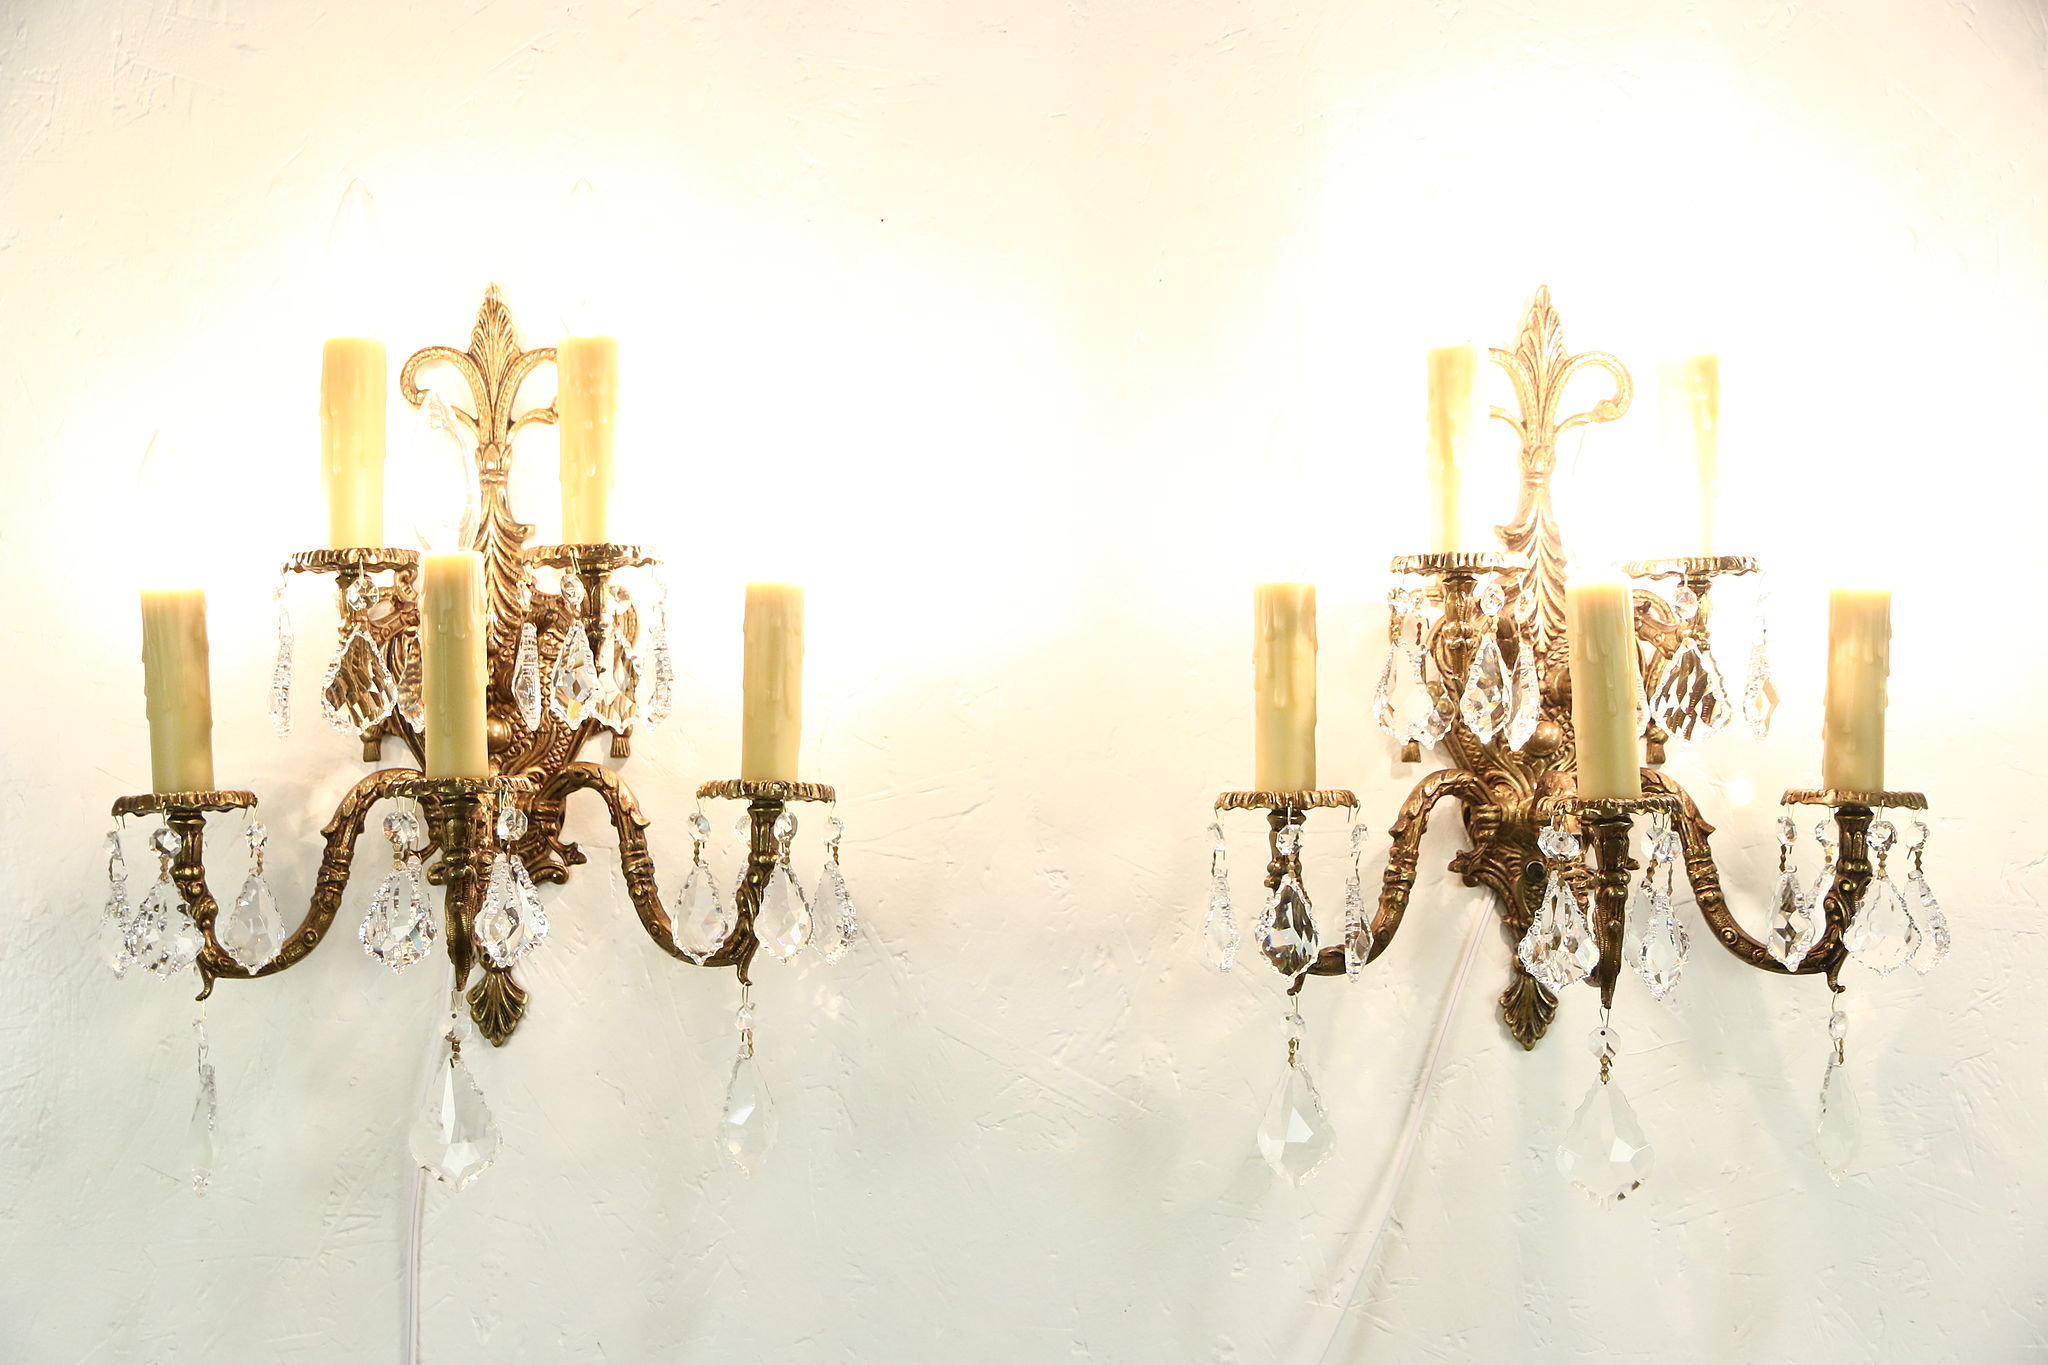 Pair of Vintage Bronze 5 Candle Wall Sconce Light Fixtures Crystal Prisms ... & Pair of Vintage Bronze 5 Candle Wall Sconce Light Fixtures ... azcodes.com